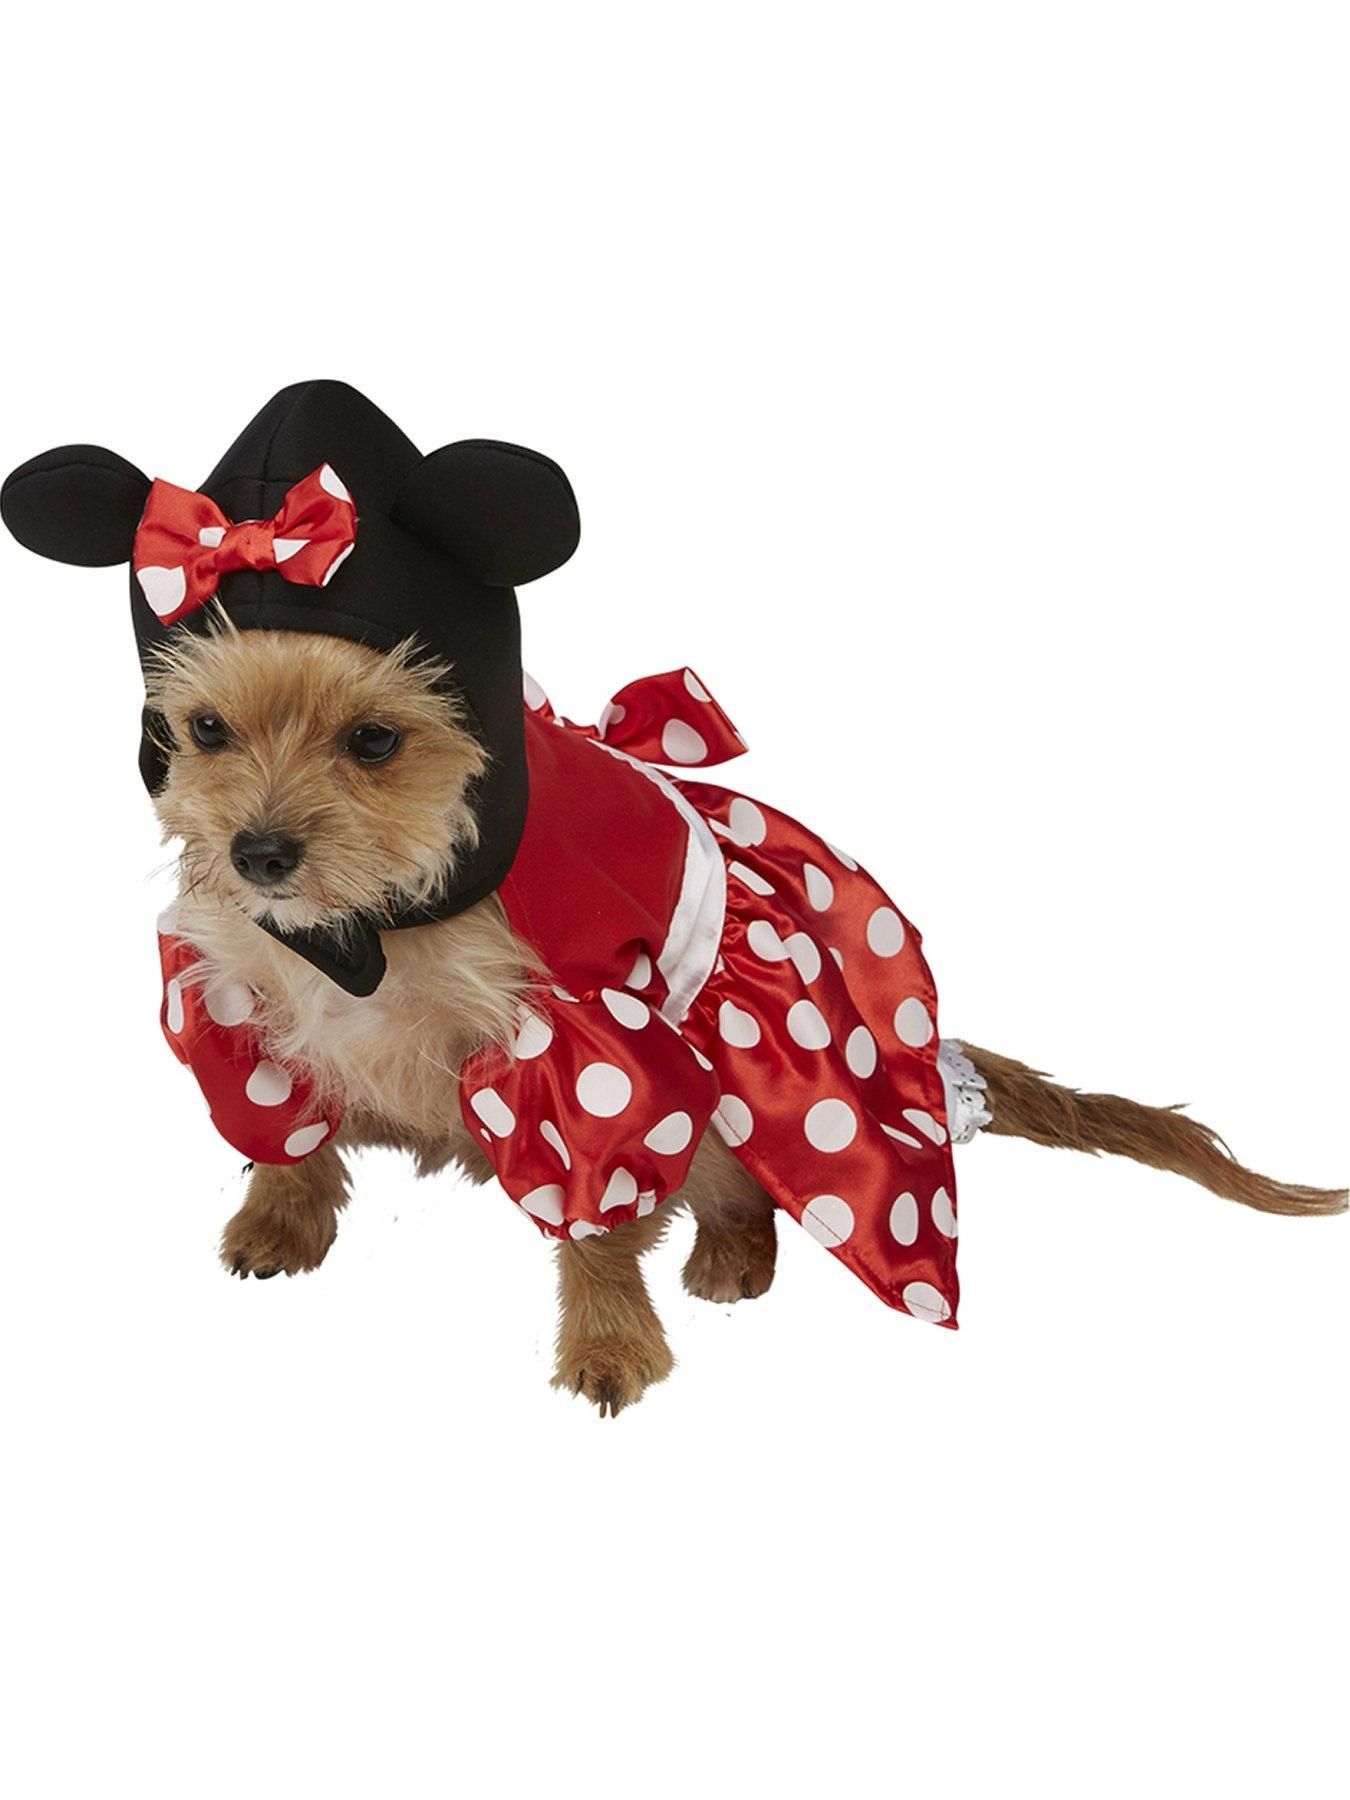 Dog And Rabbit In Mickey Mouse And Minnie Mouse Disney Costumes